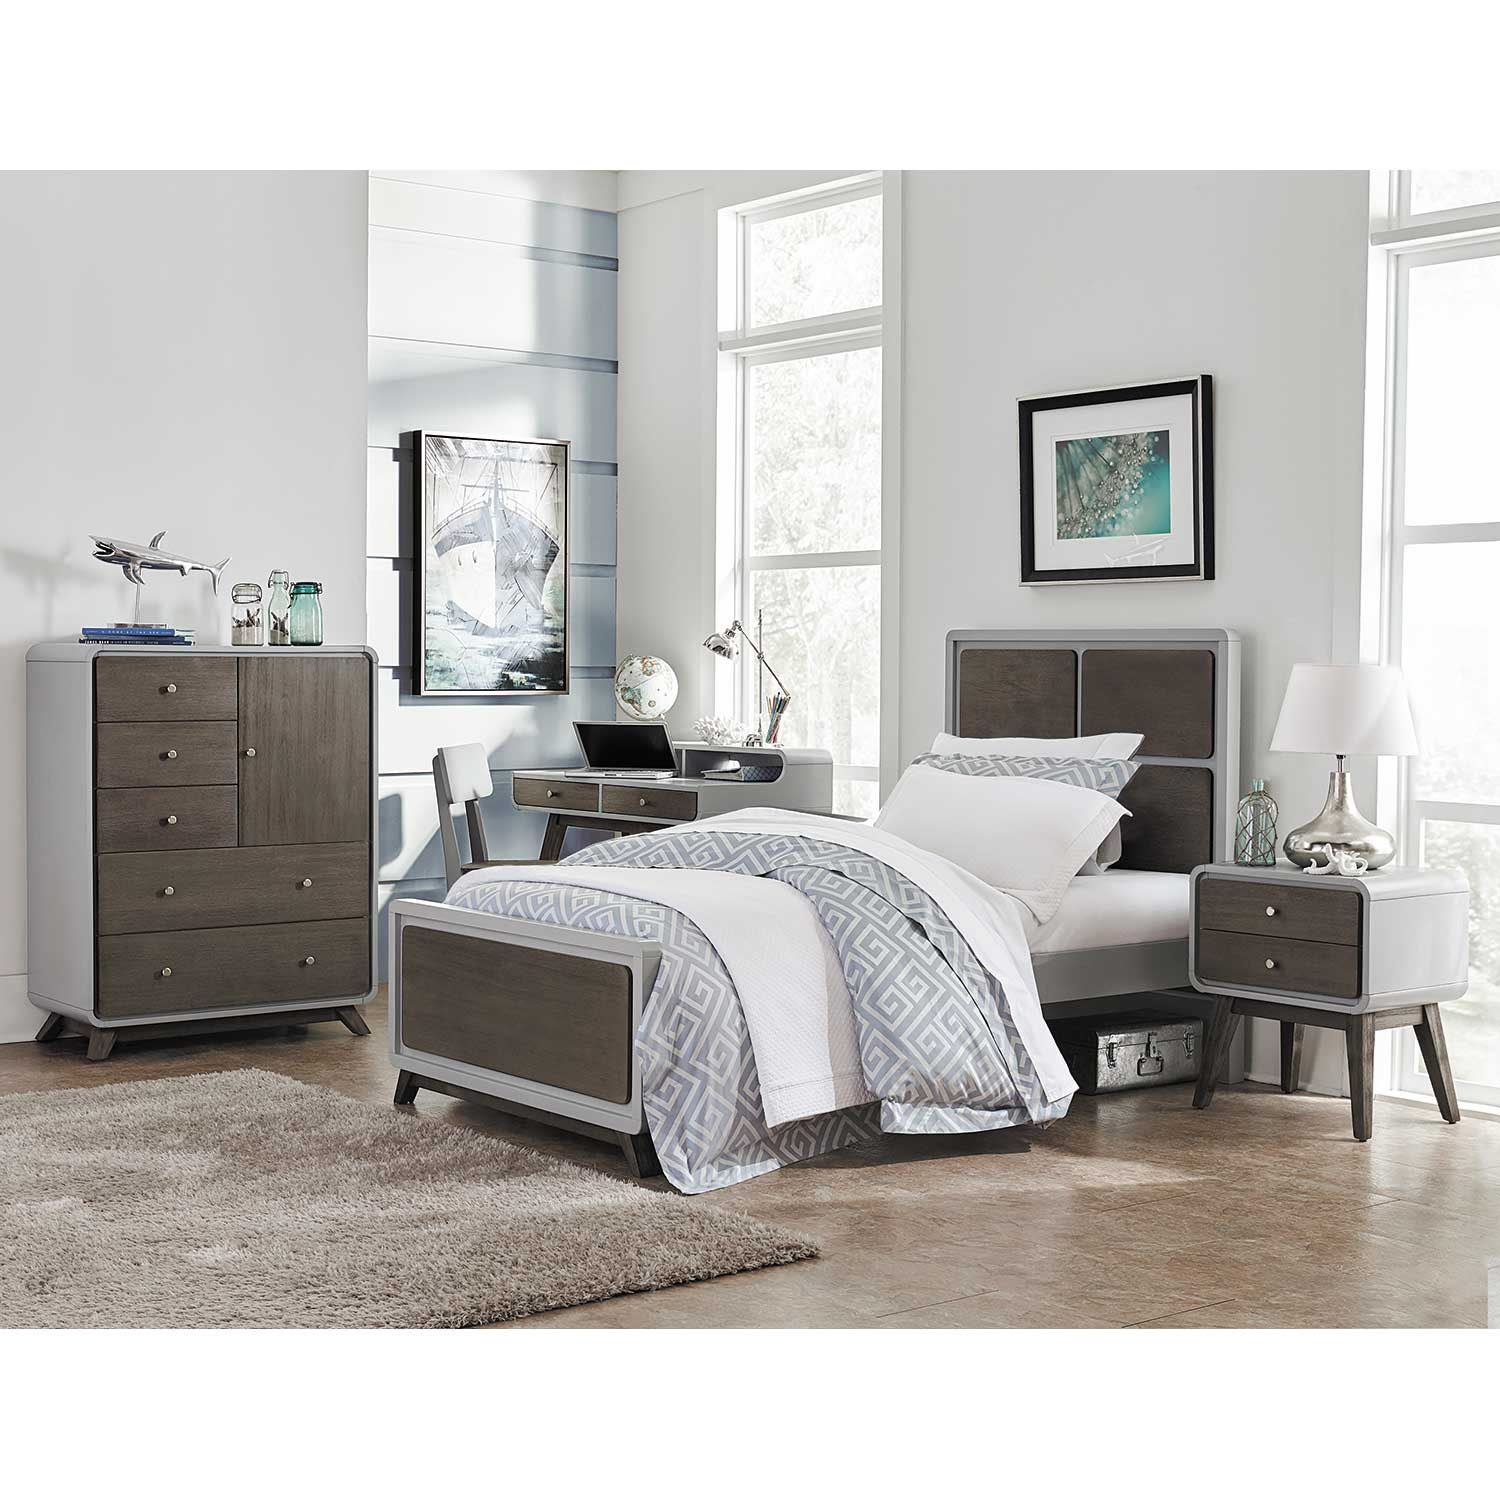 East end twin bookcase bed 7101 tbkcs hillsdale for Bookshelf behind bed